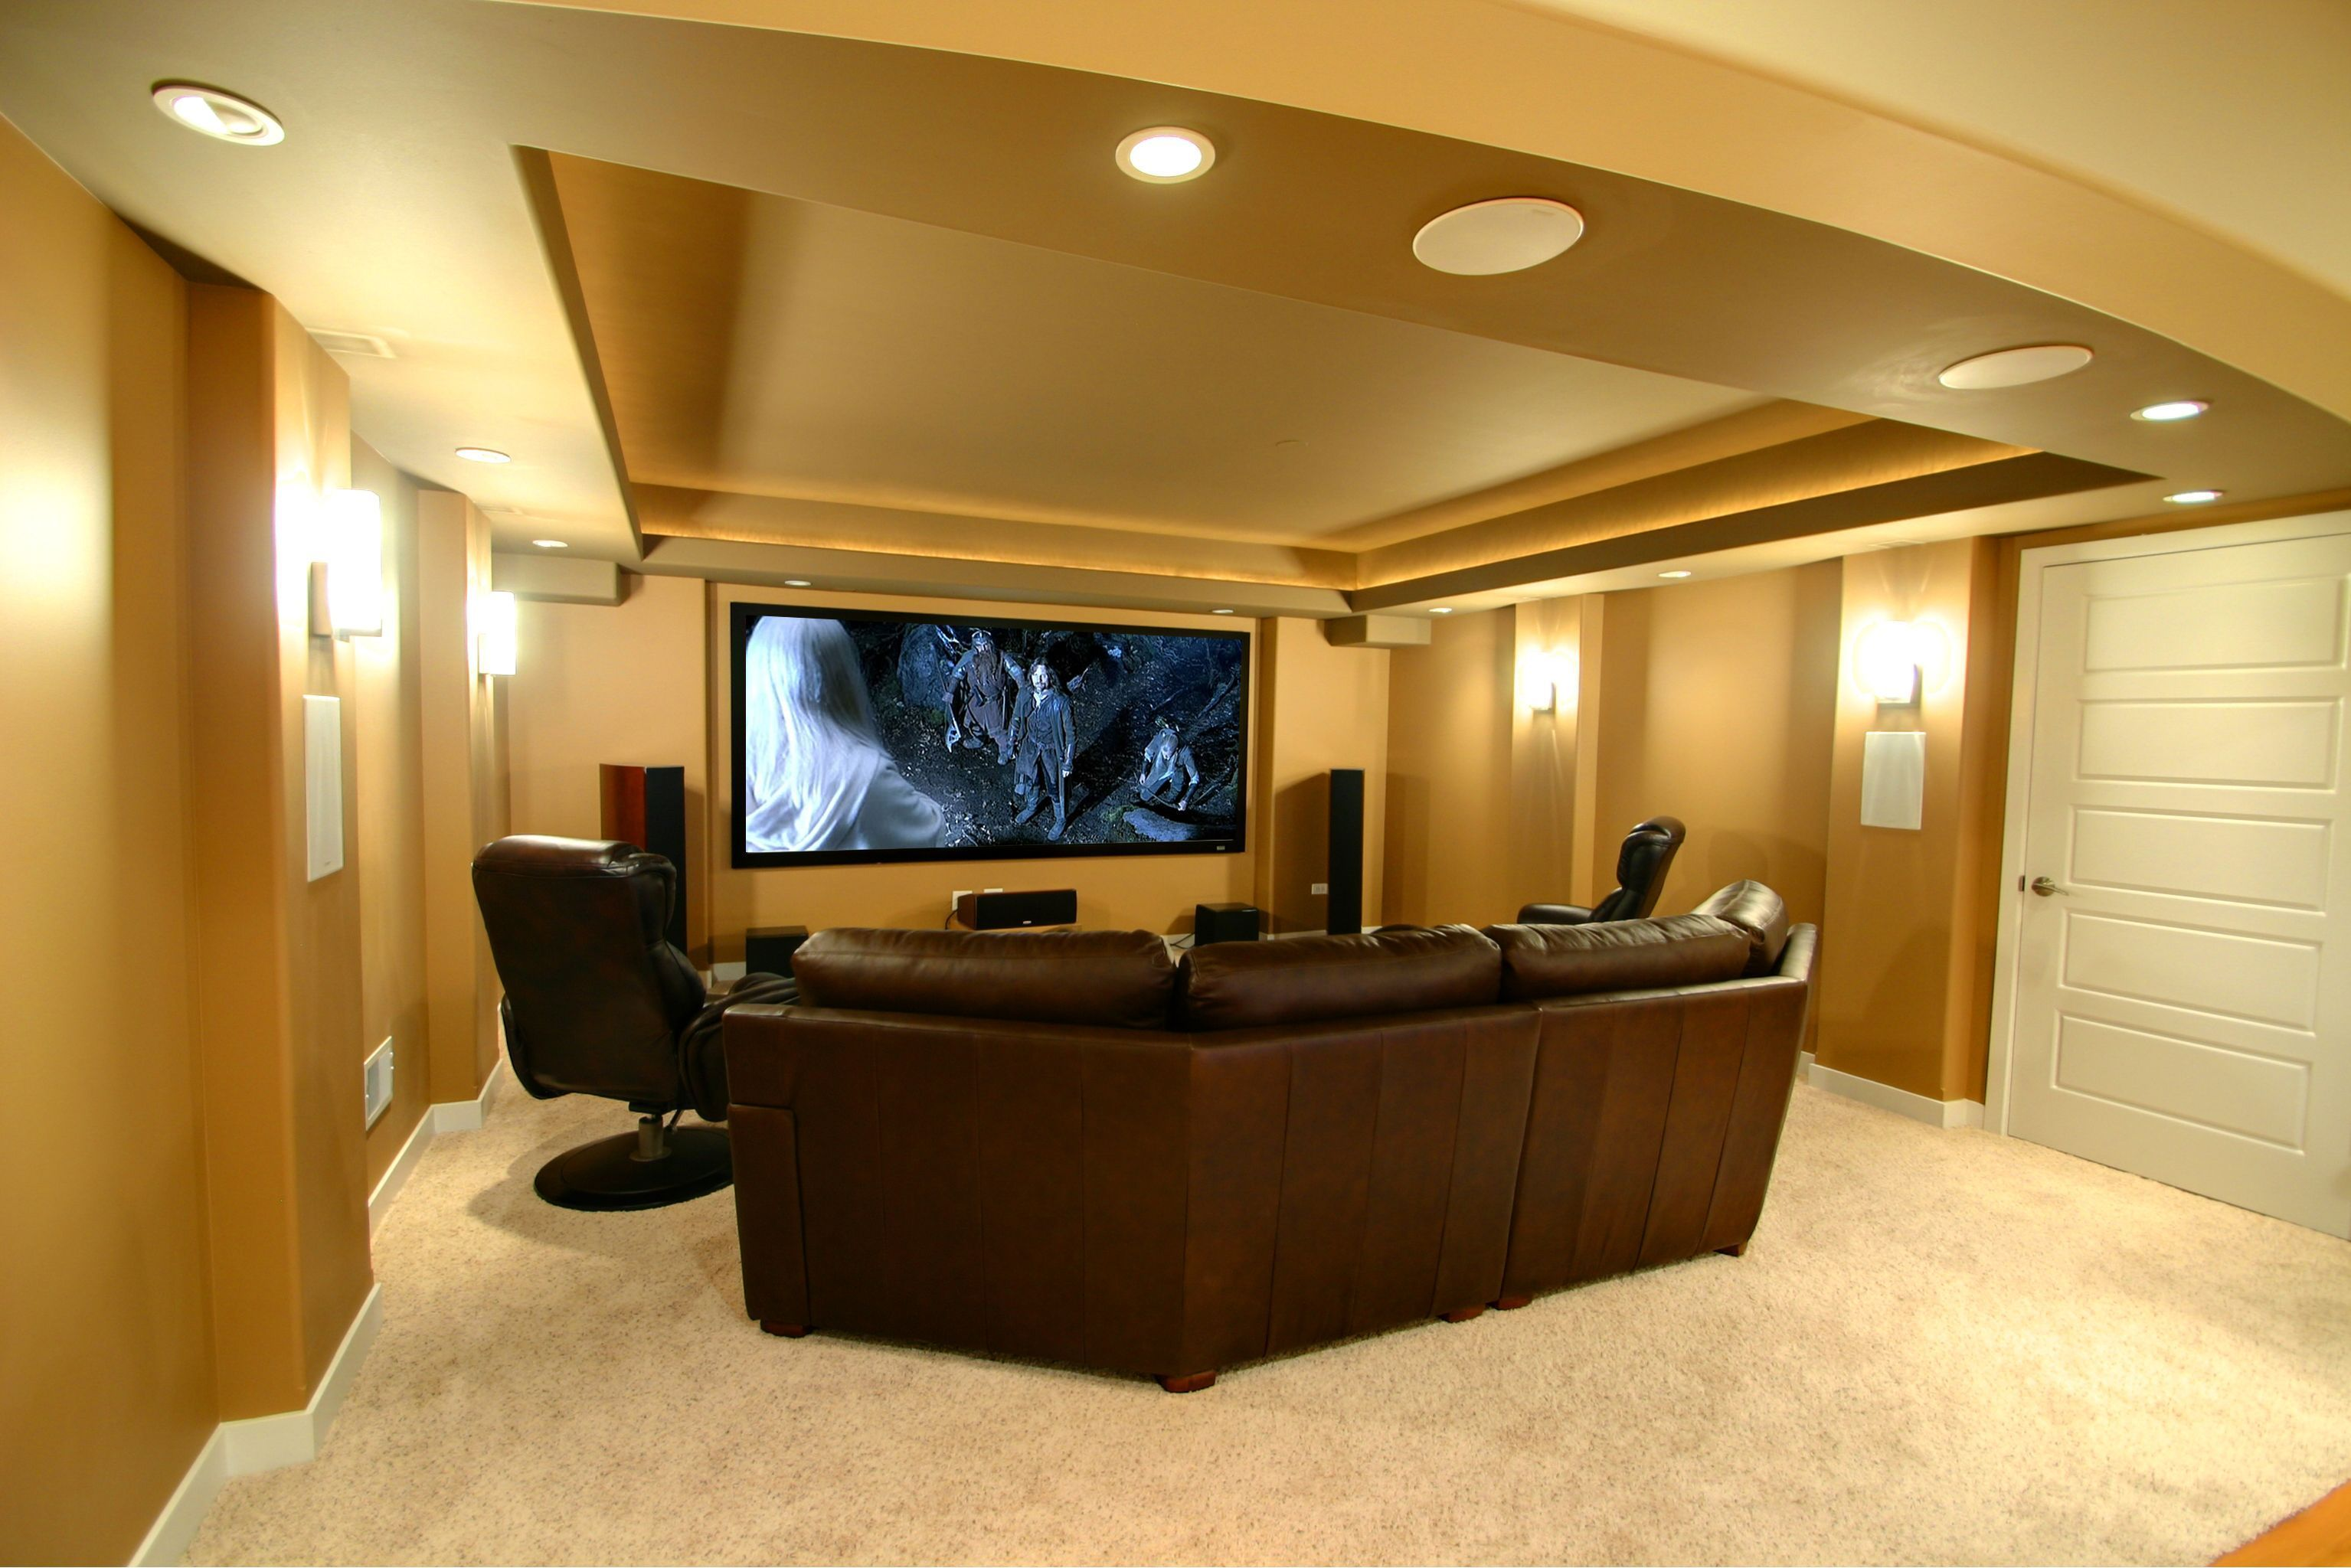 23 Basement Home Theater Design Ideas For